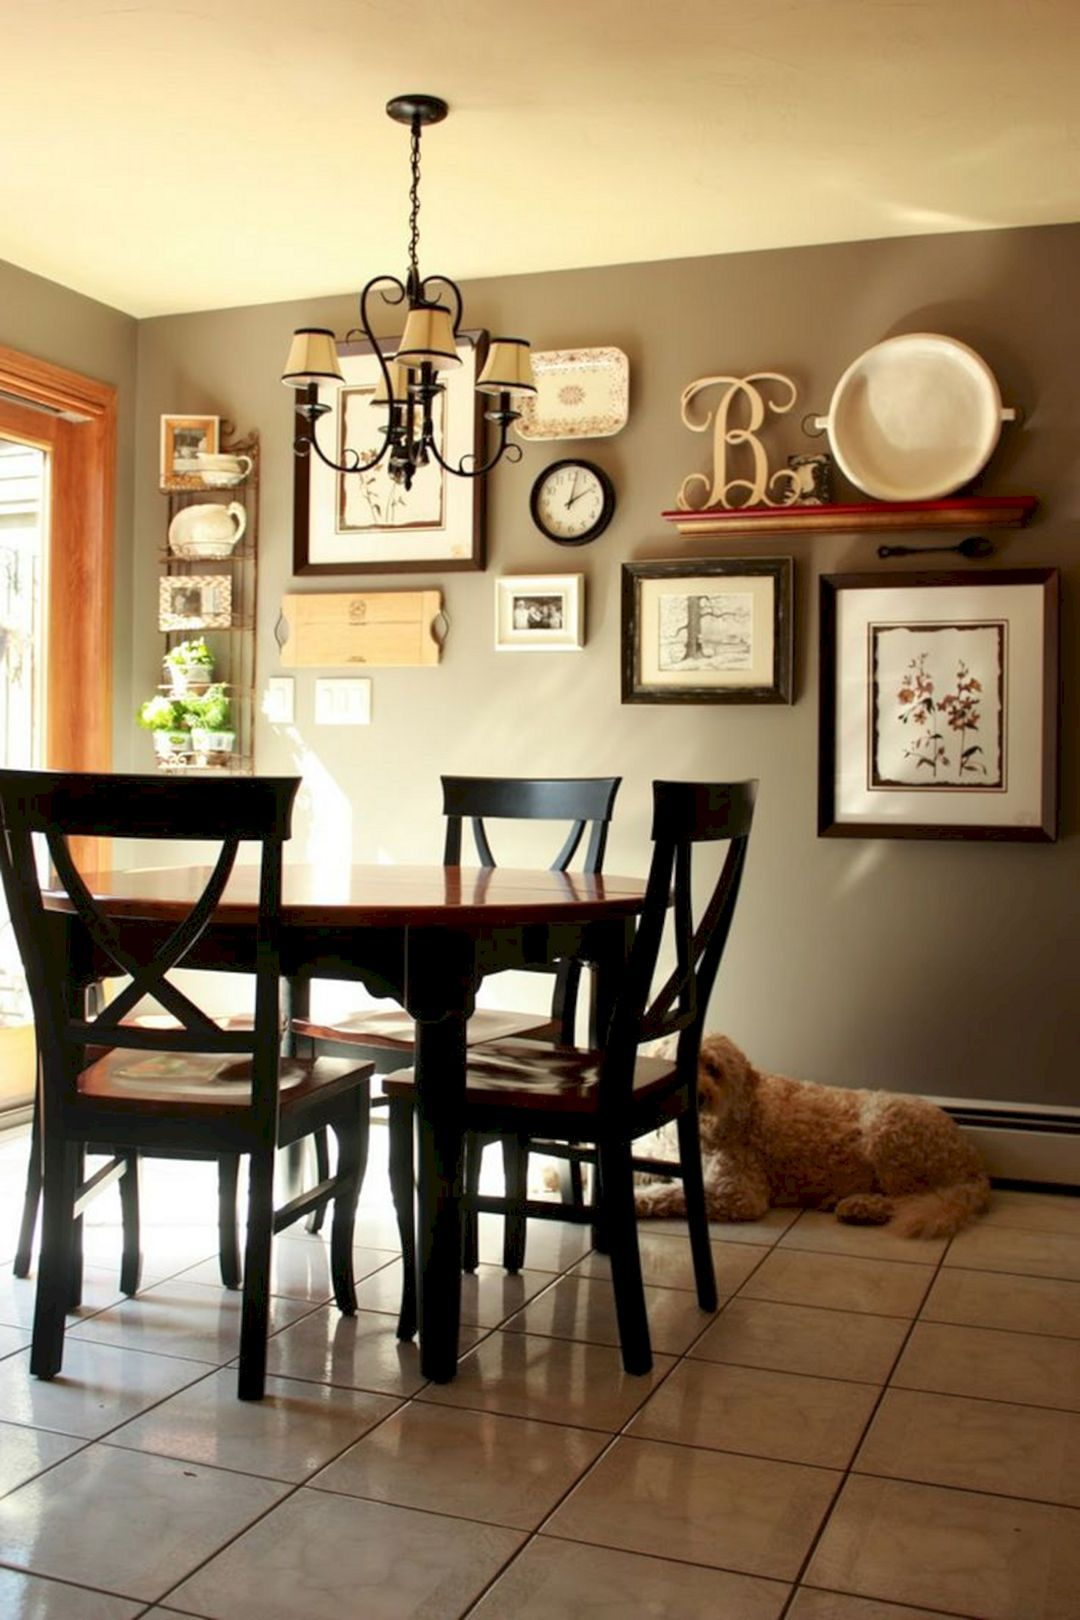 Cute 10 Kitchen Wall Decorating Ideas You Have To See Dining Room Wall Decor Dining Room Walls Kitchen Wall Decor